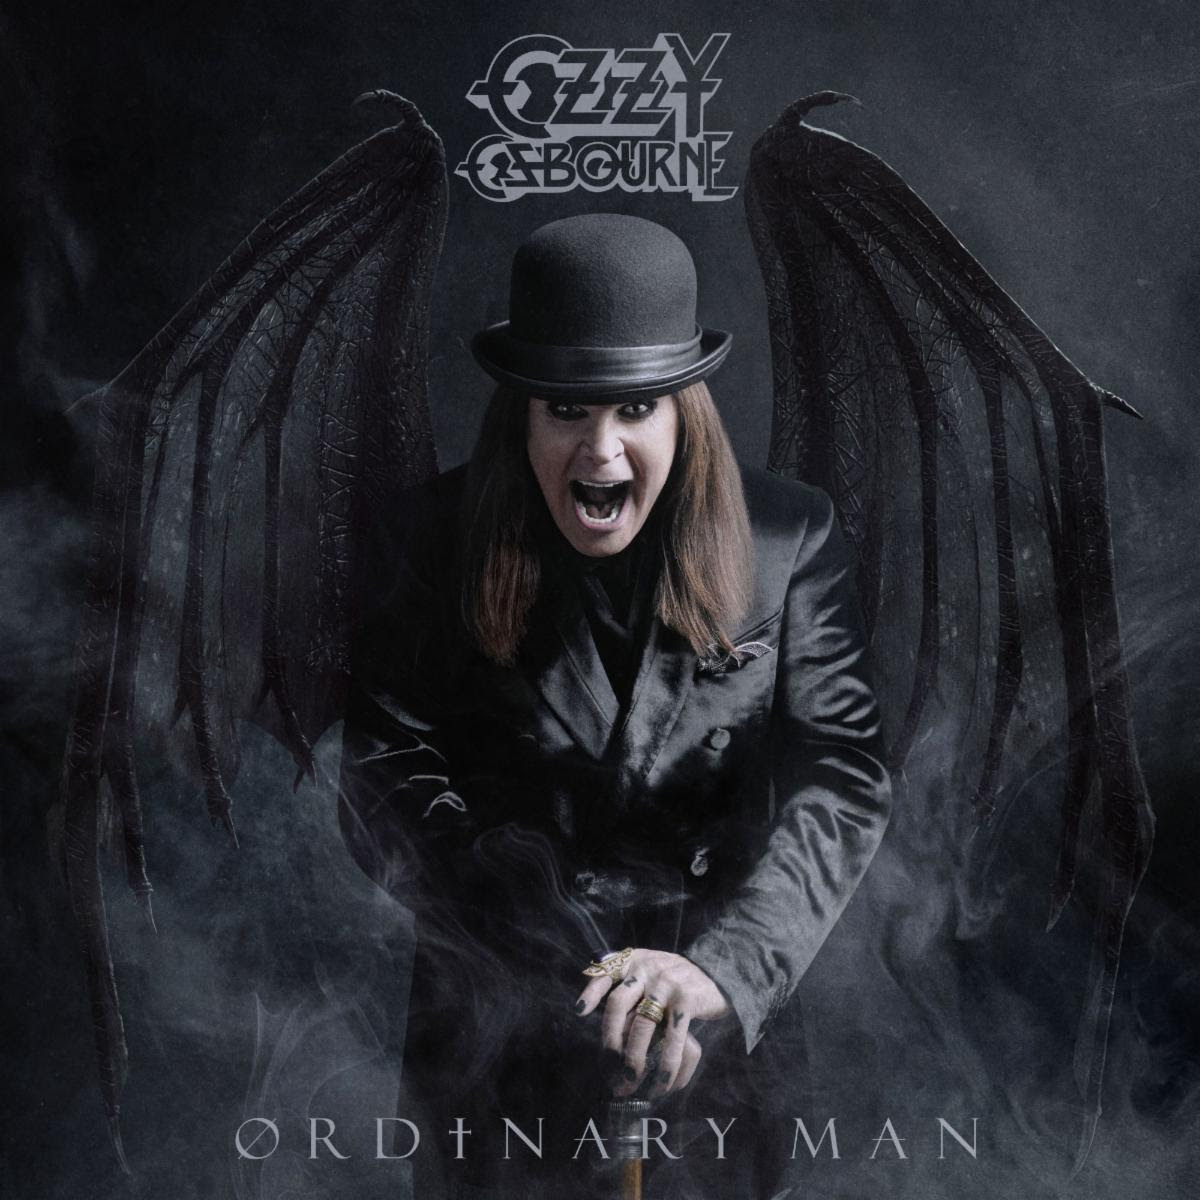 Ozzy Osbourne's New Album Is A Disappointing 'Ordinary' One